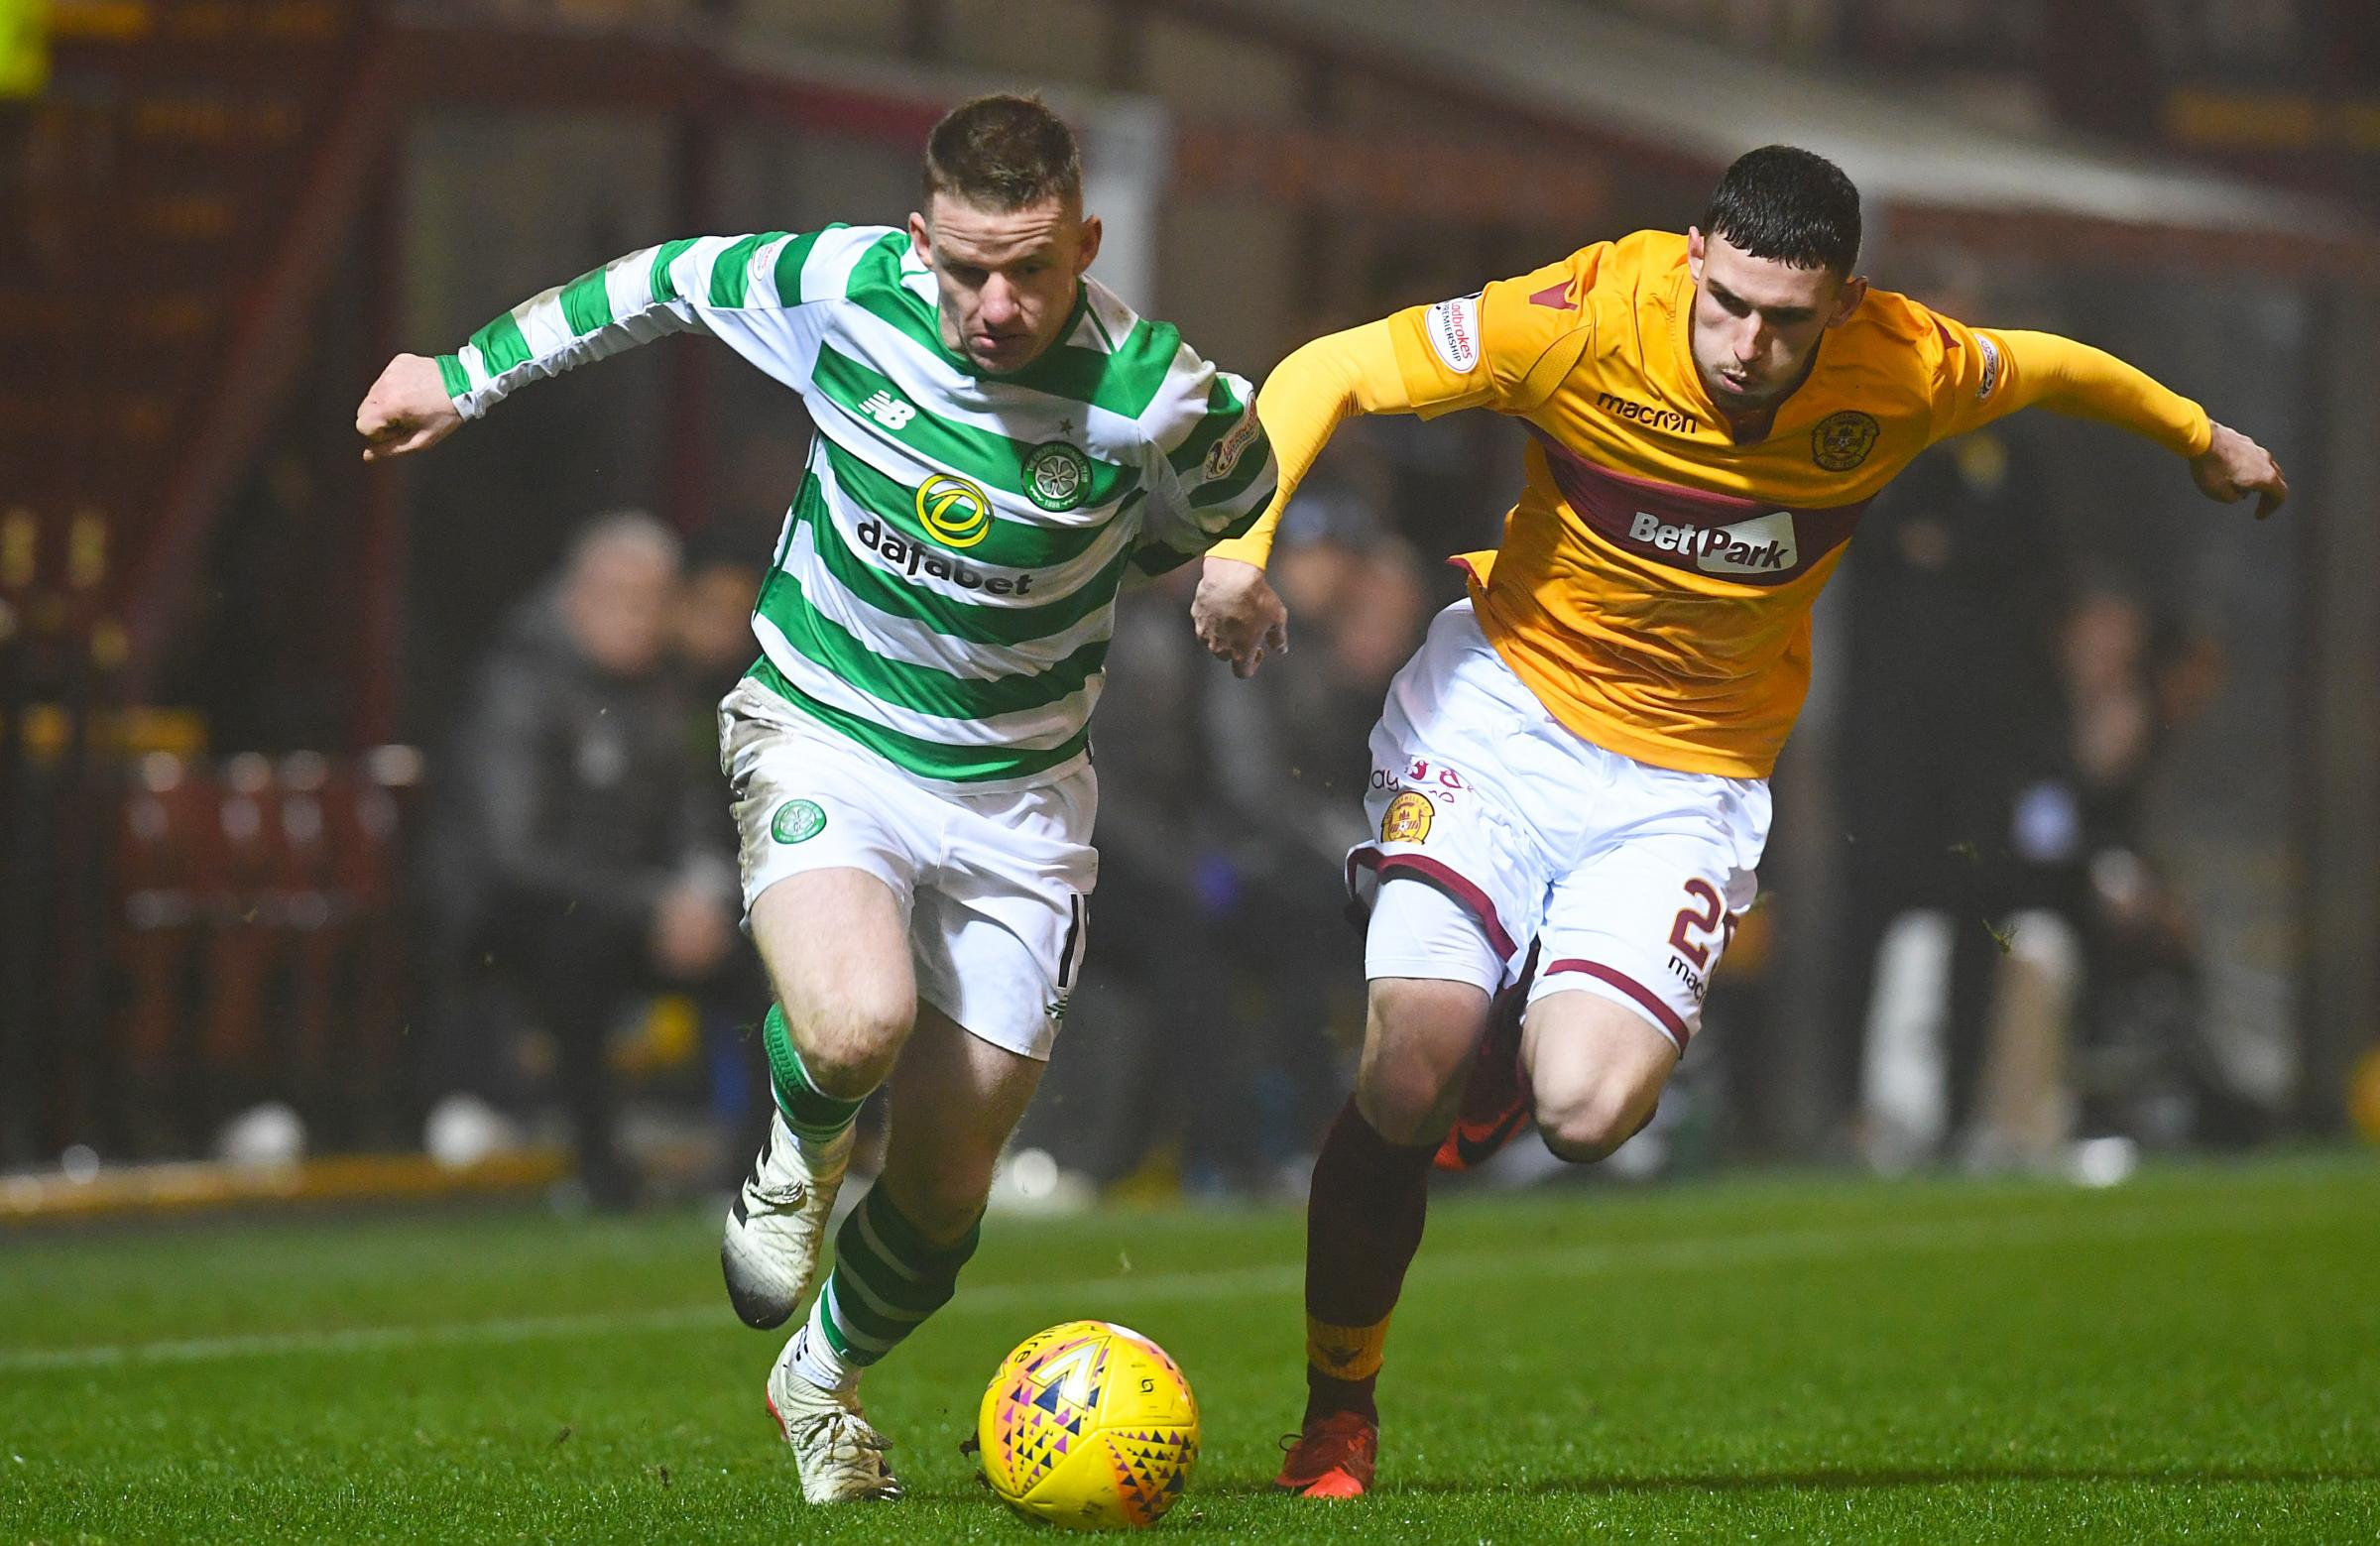 05/12/18 LADBROKES PREMIERSHIP.MOTHERWELL v CELTIC.FIR PARK - MOTHERWELL.Celtic's Jonny Hayes (left) competes with Motherwell's Adam Livingstone.